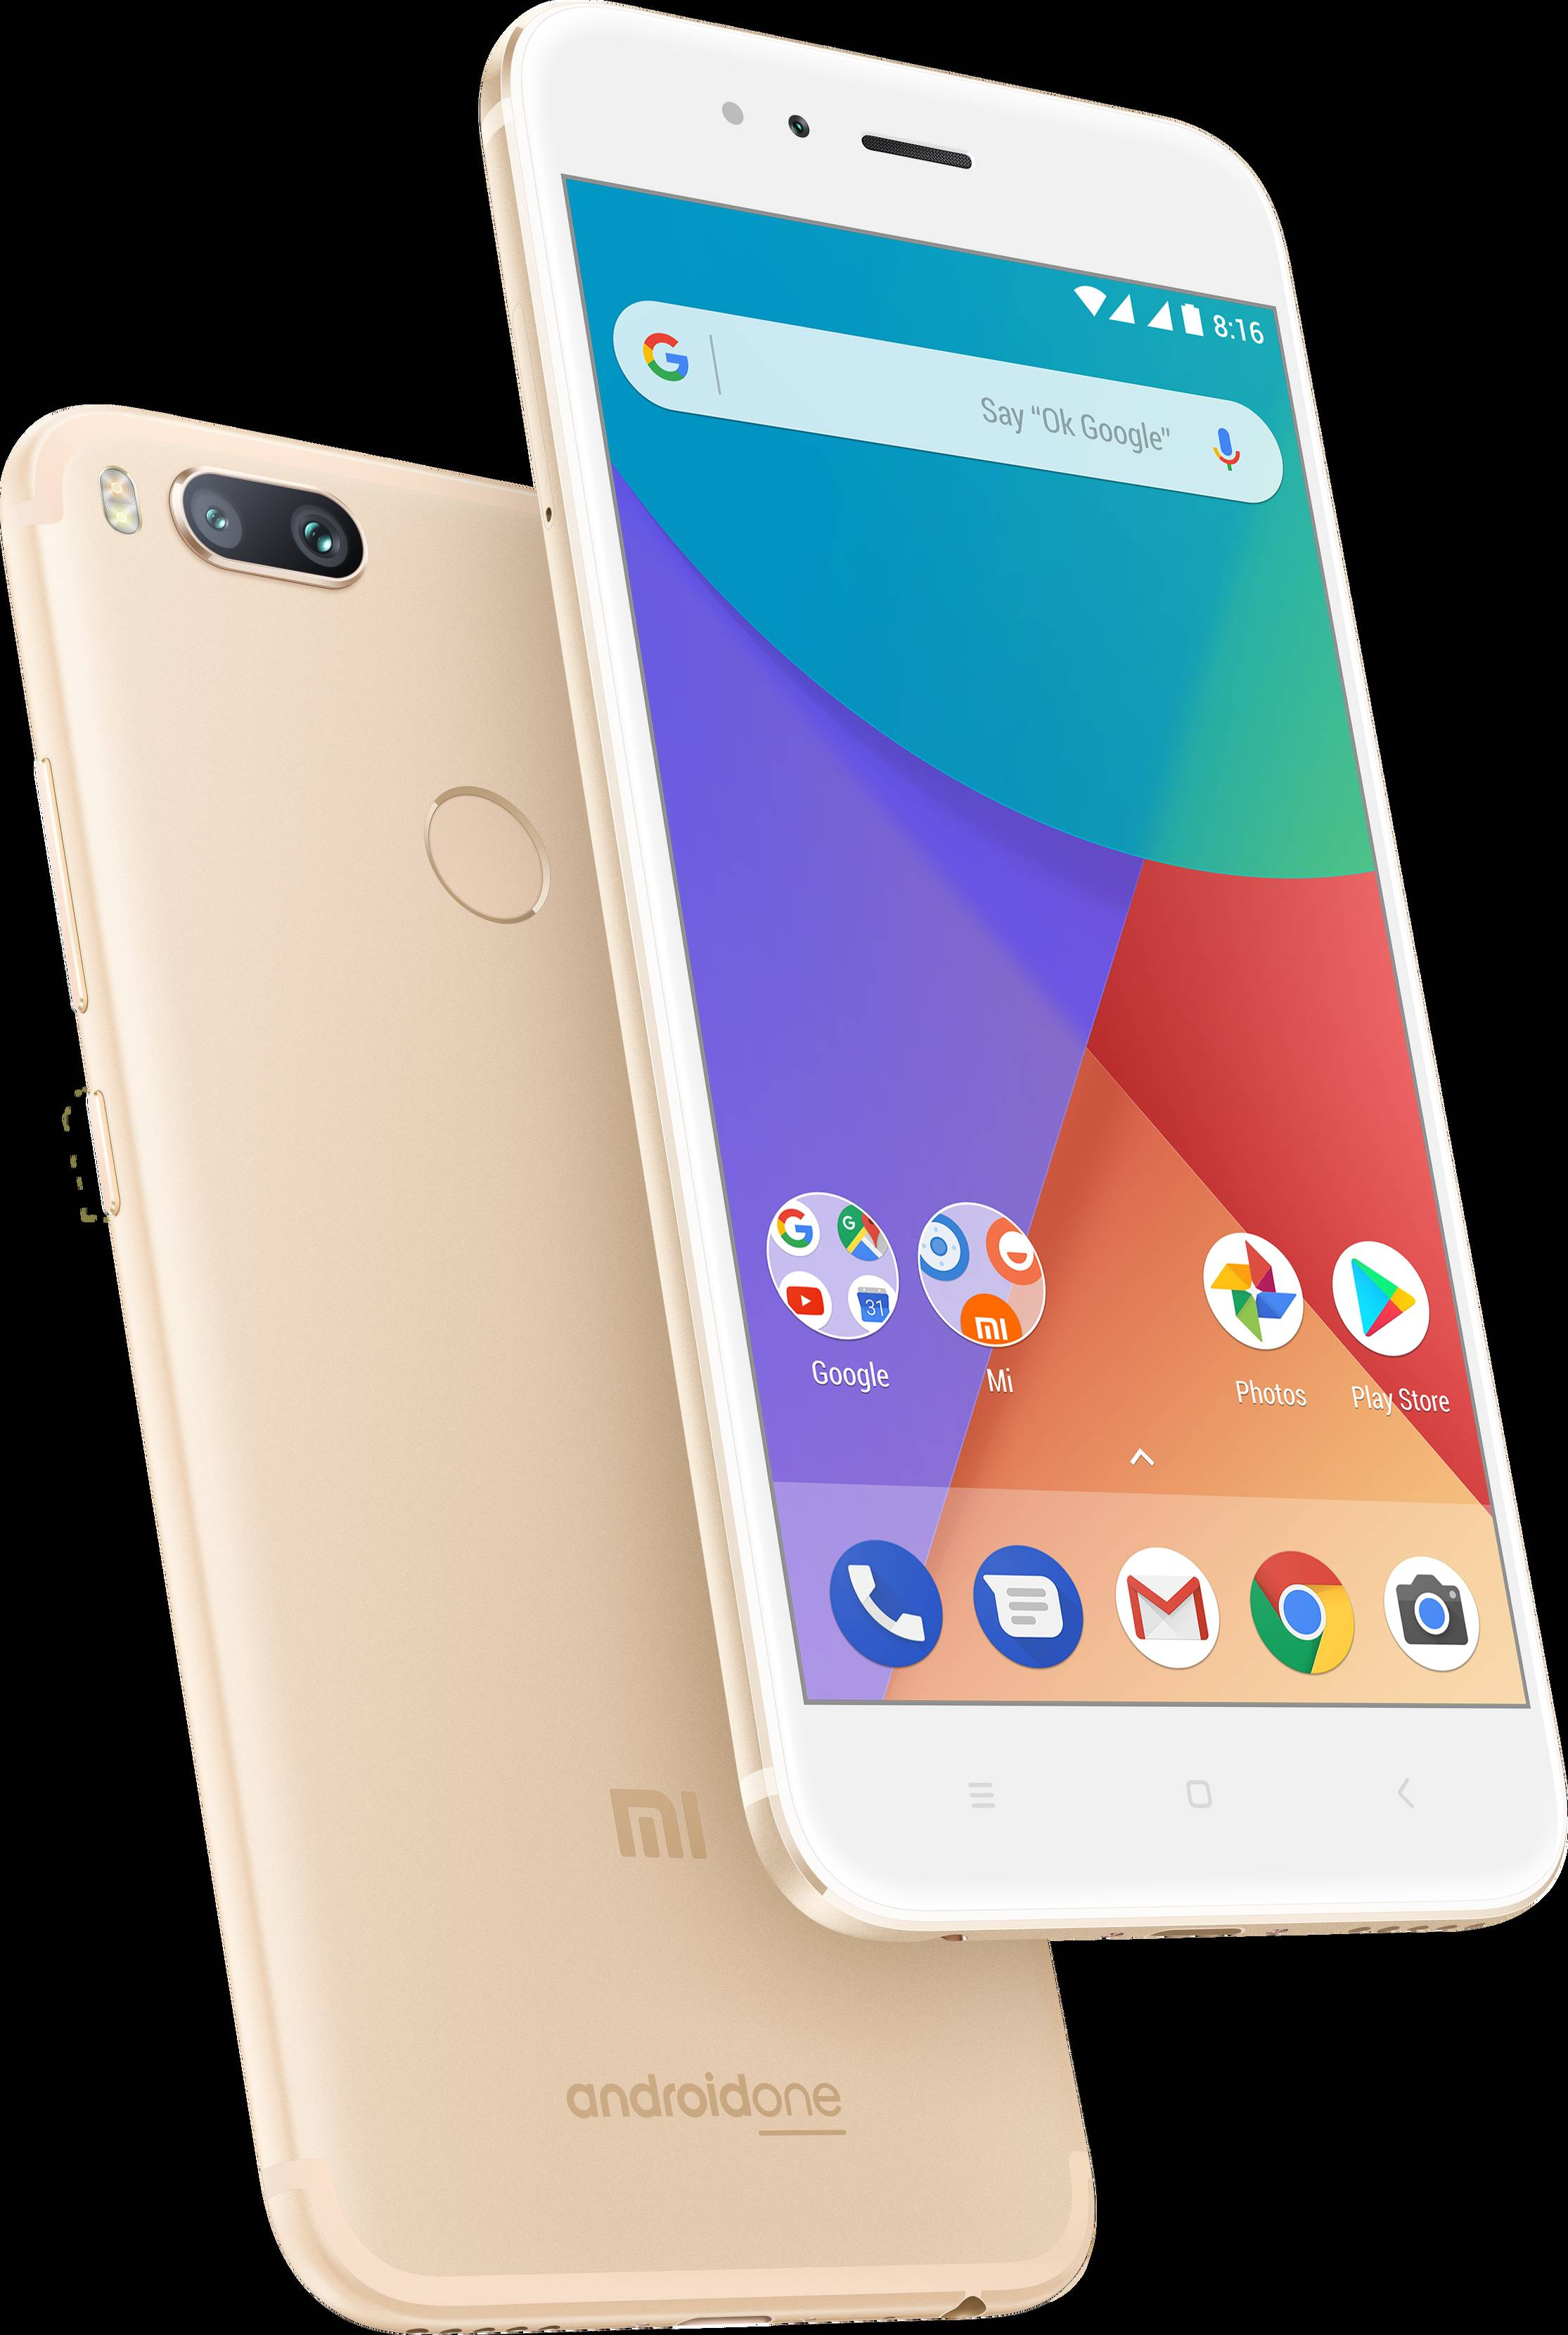 Xiaomi Launches Mi A1 With Google In Major Next Step For